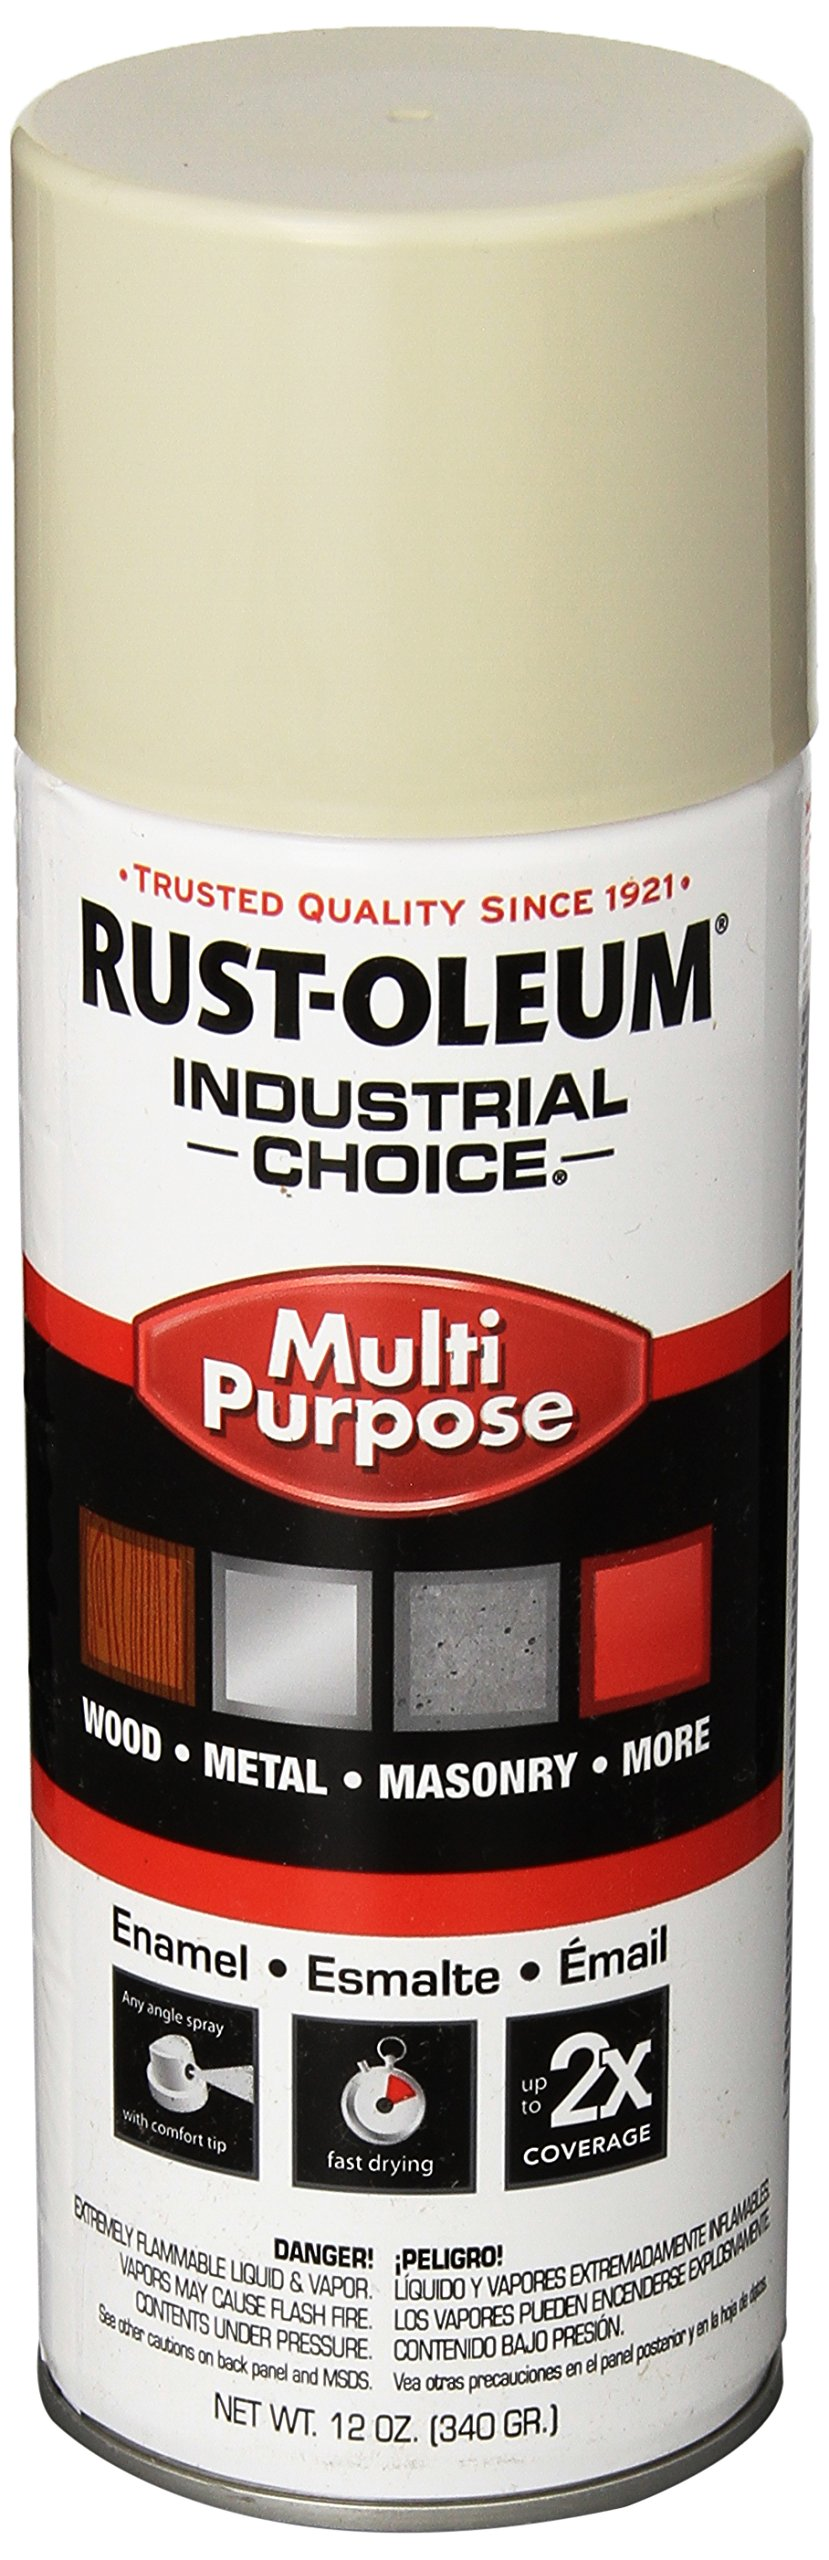 Rust-Oleum 1672830 Almond 1600 System General Purpose Enamel Spray Paint, 16 fl. oz. container, 12 oz. weight fill, Can (Pack of 6)